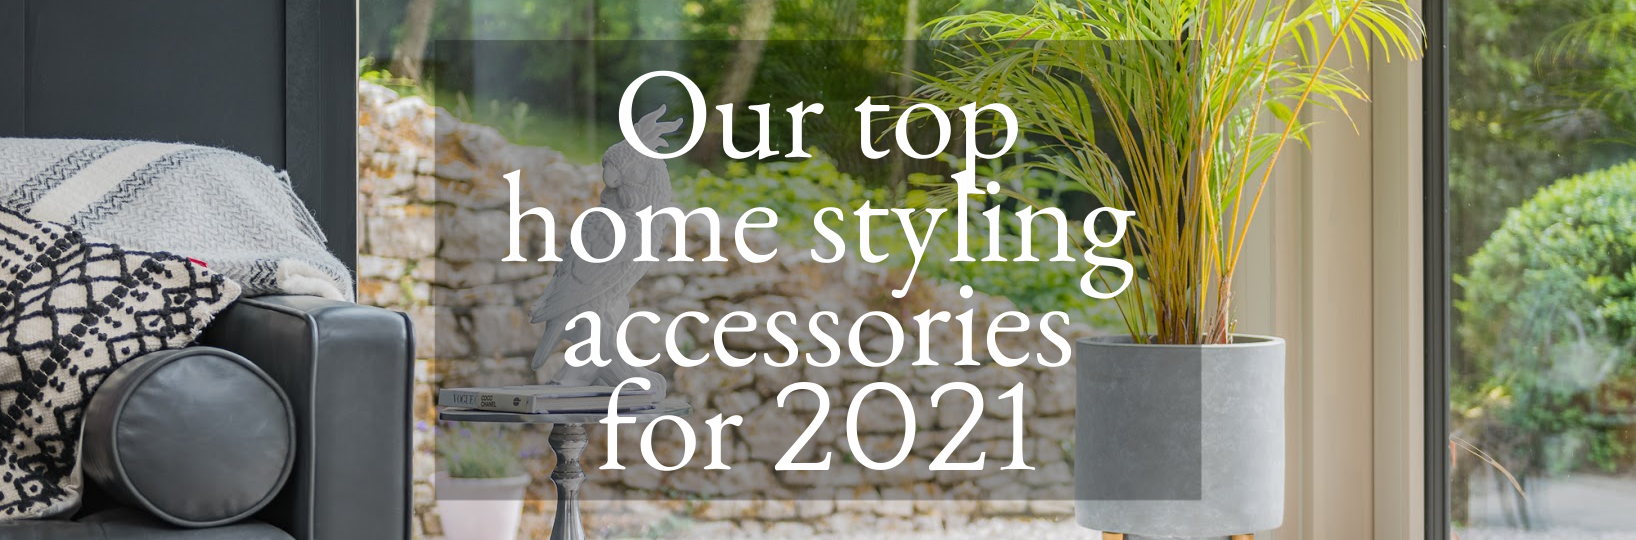 facebook_cover_art_-_our_top_home_styling_accessories_for_2021__copy